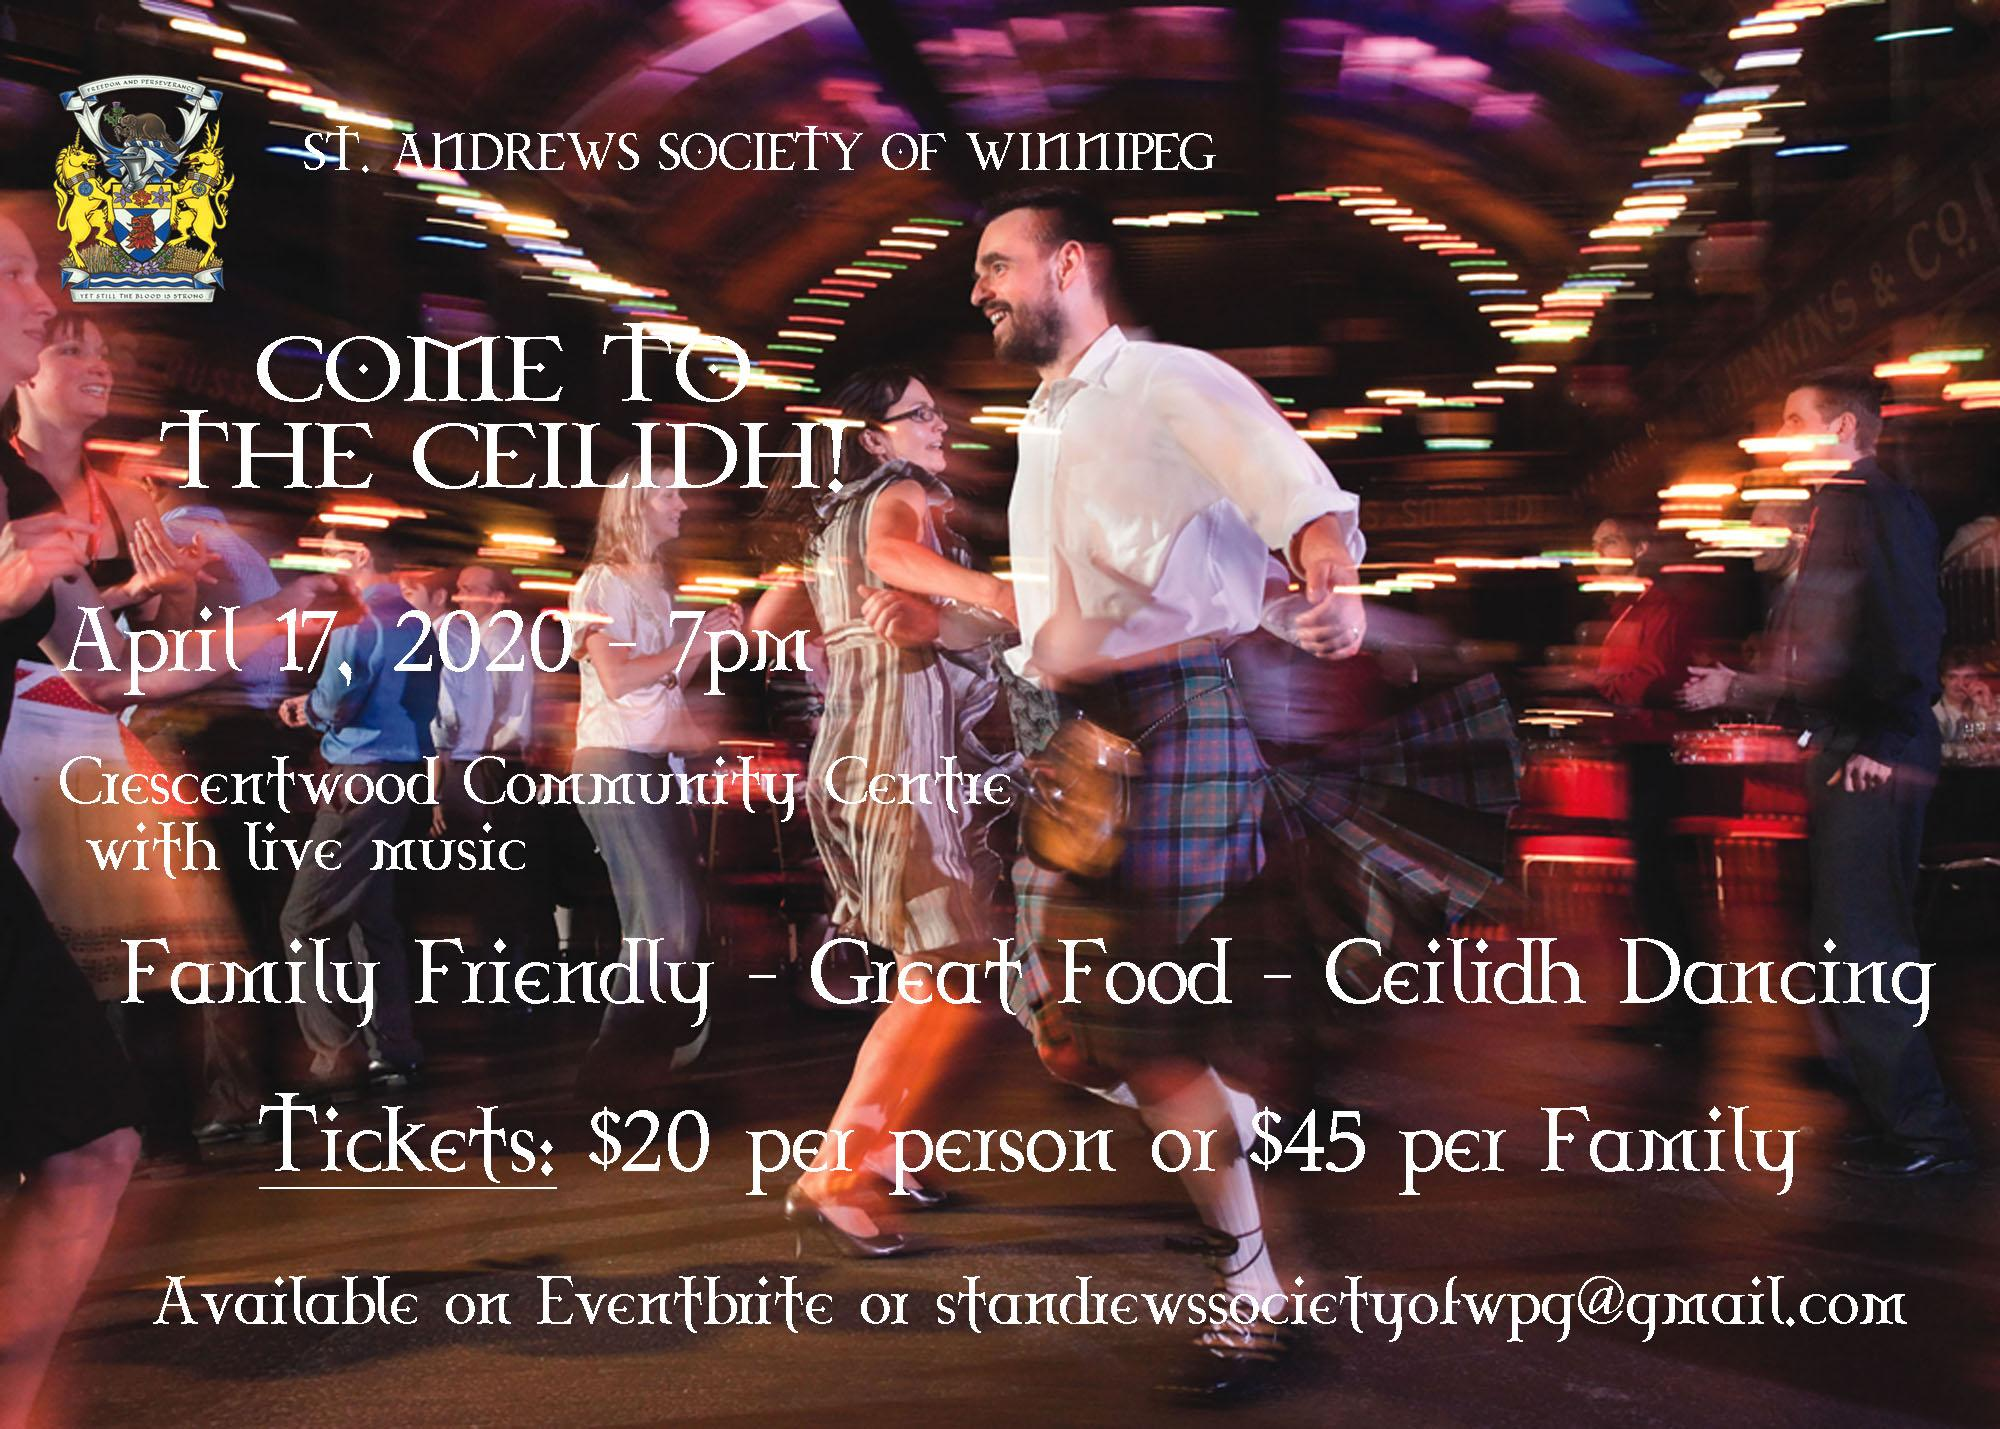 Come to the Ceilidh - Postponed to a date in September tba